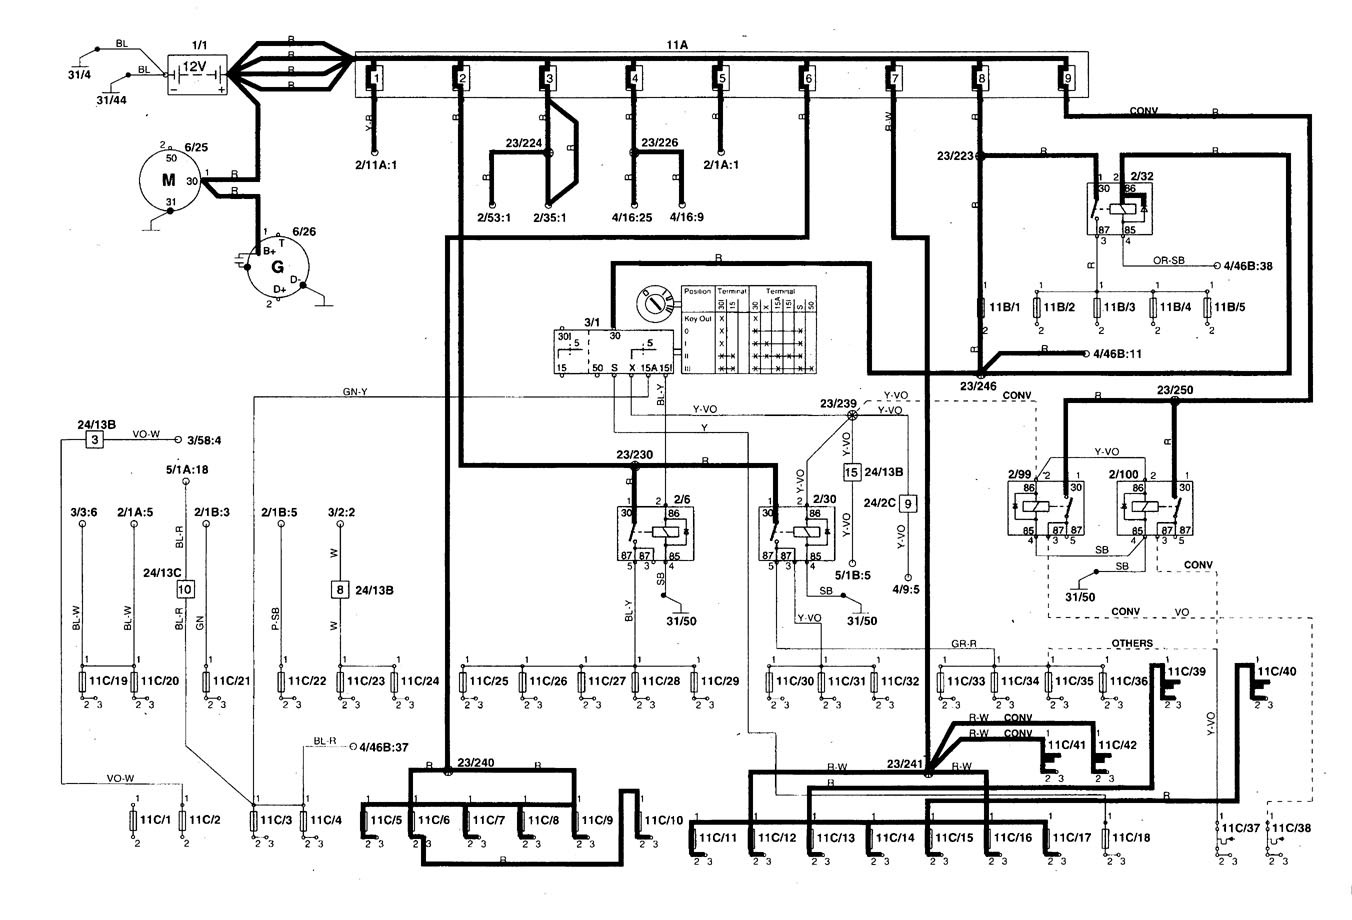 2004 pacifica wiring diagram